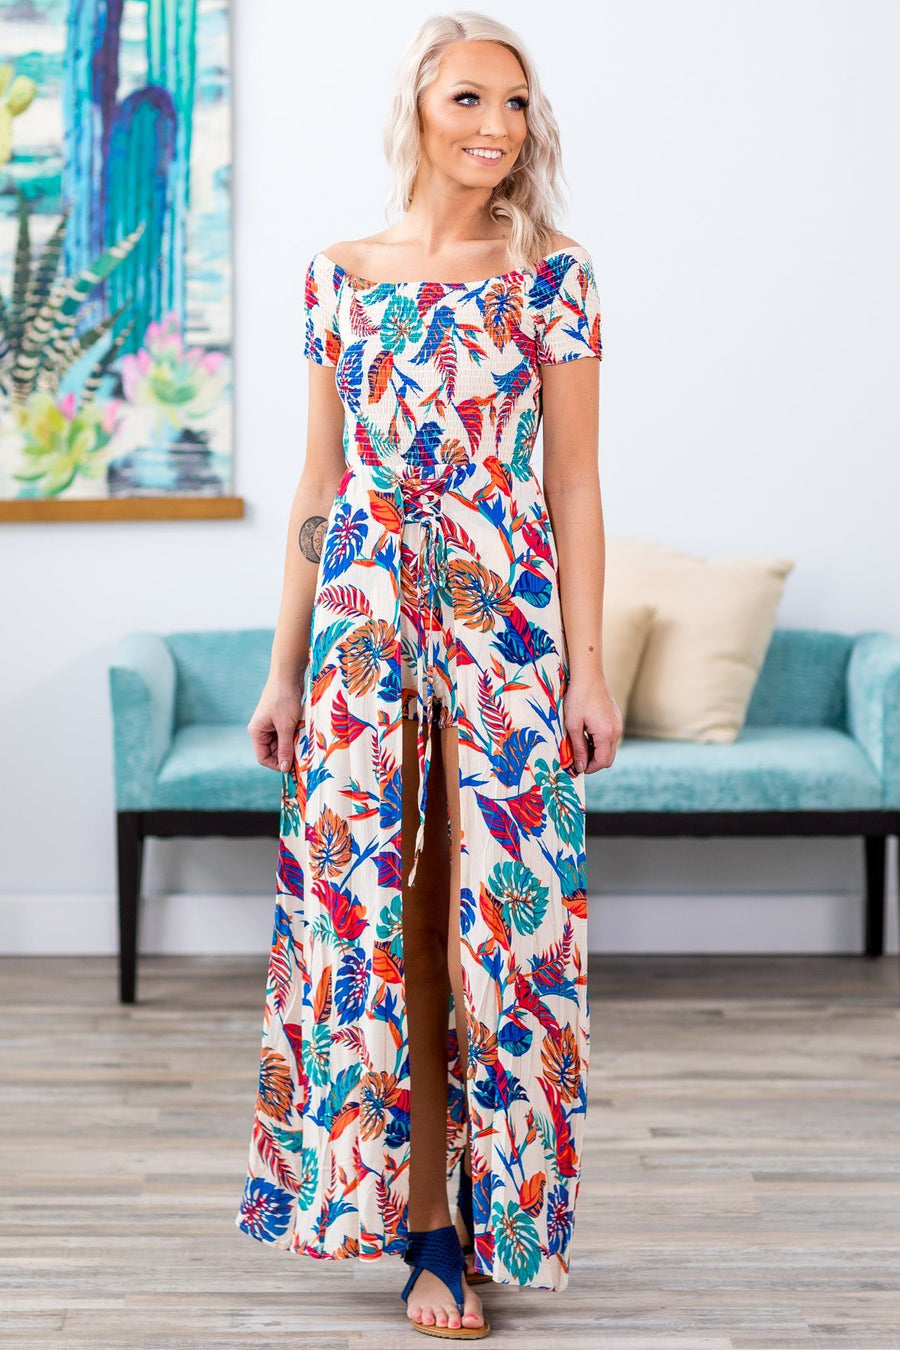 57930d8ff0e85 Hurry   Shop Incredibly Priced Dresses With The  1 Dress Boutique ...